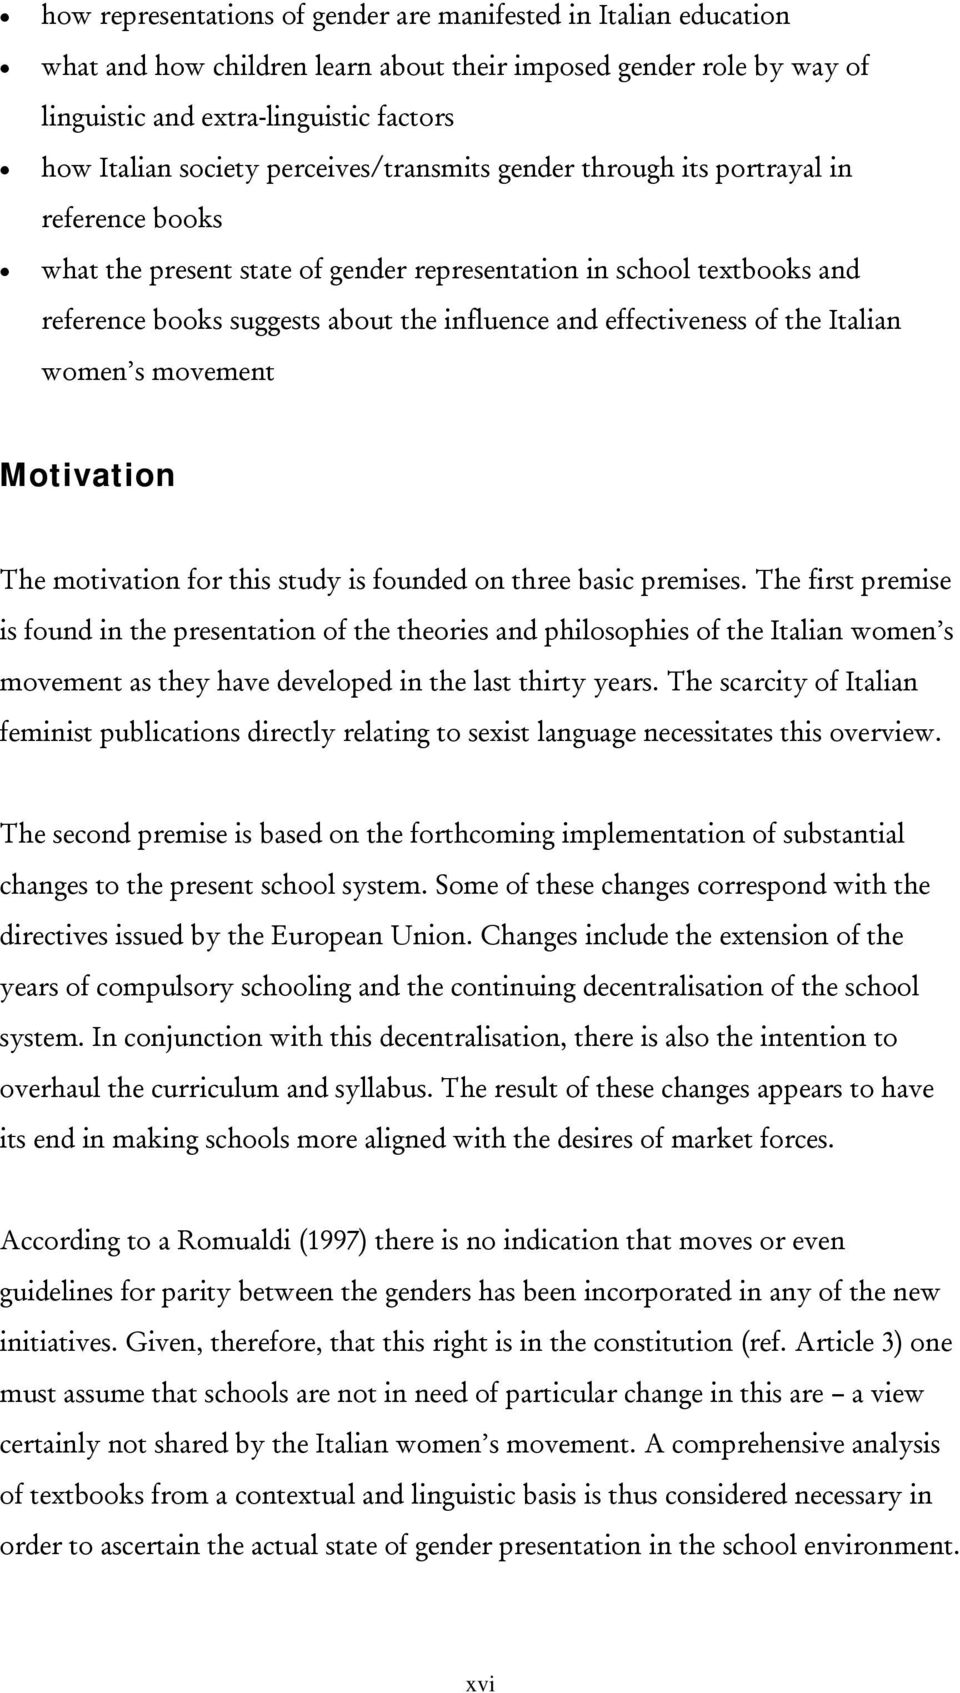 effectiveness of the Italian women s movement Motivation The motivation for this study is founded on three basic premises.